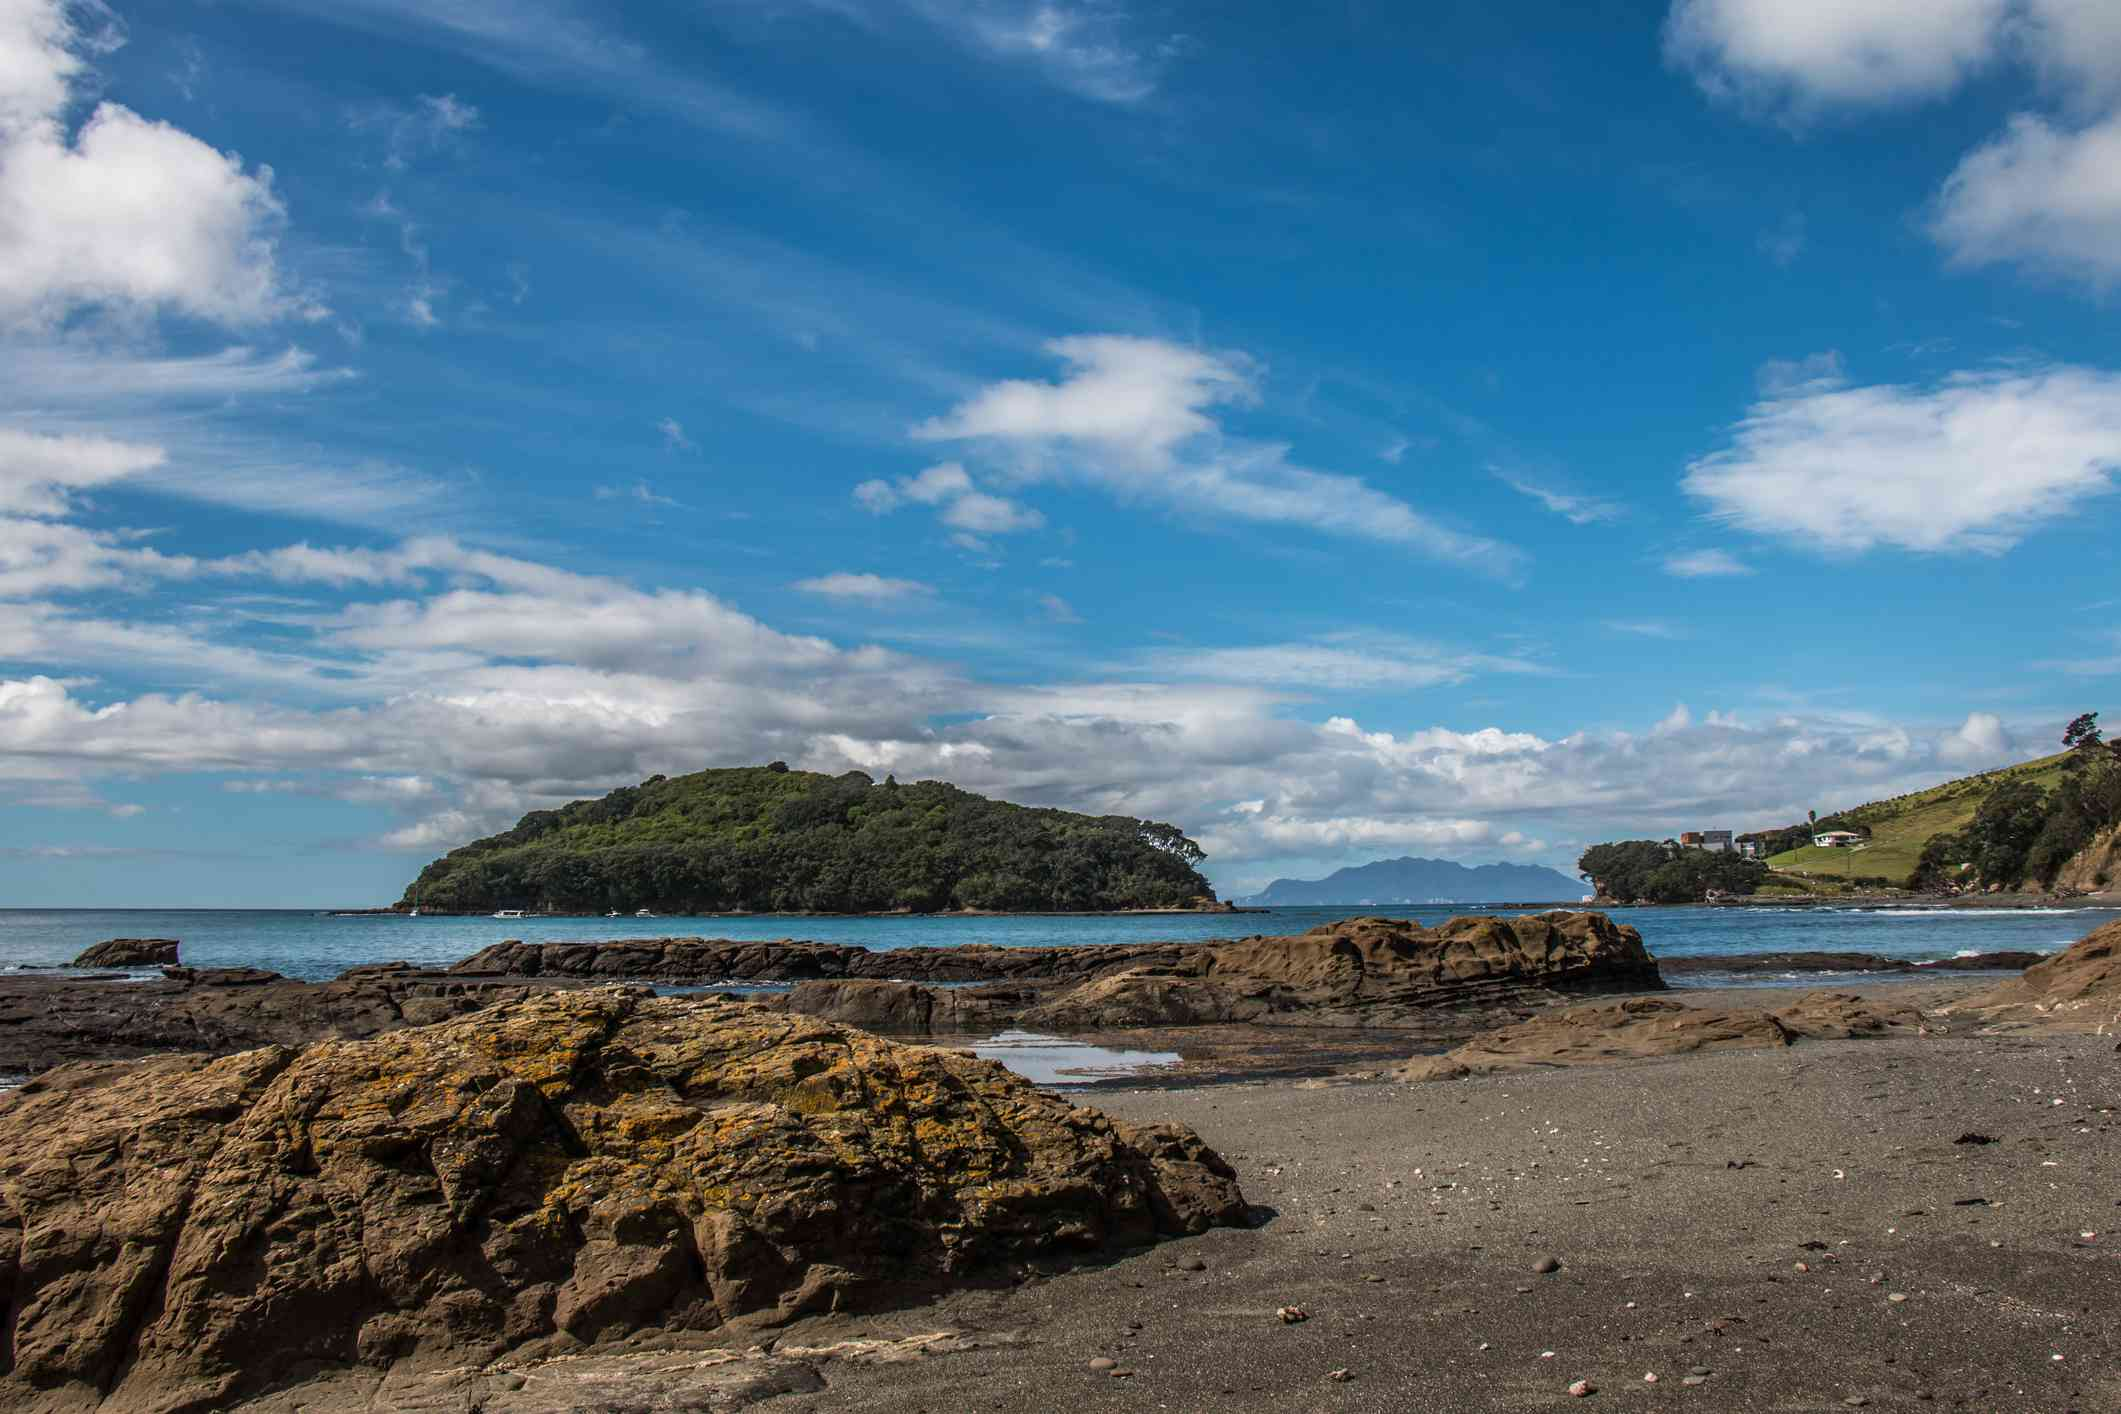 rocky beach with a view of a lush islandand blue sky